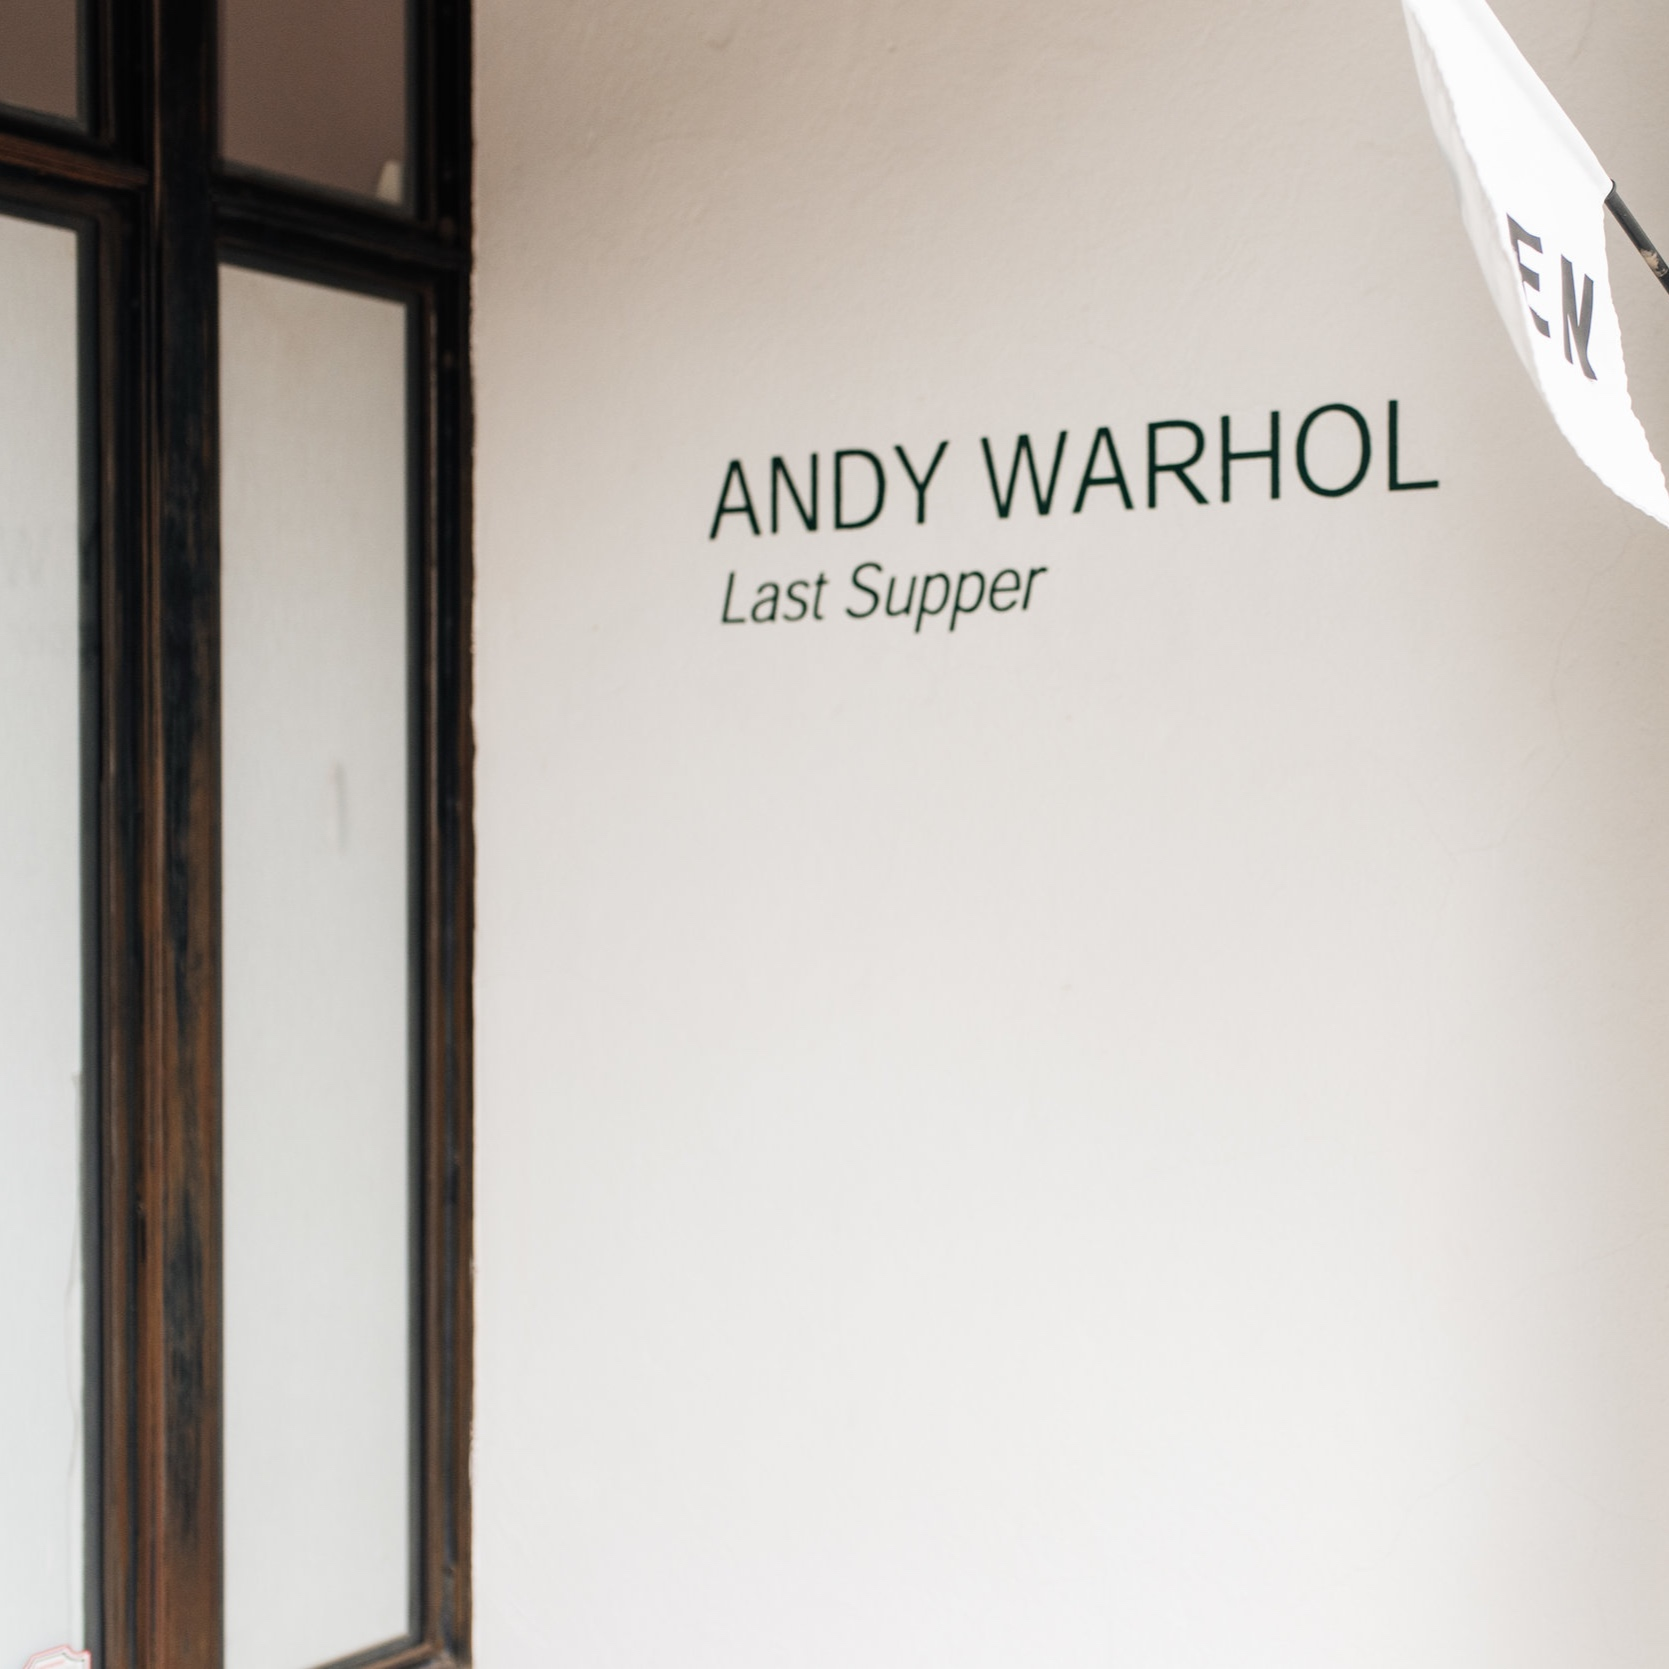 AYN FOUNDATION - PERHAPS BETTER KNOWN AS THE WARHOL INSTALLATION, THE AYN FOUNDATION HOUSES ANDY WARHOL'S LAST SUPPER. IT'S A QUICK STOP - JUST ONE ROOM - WHERE PICTURES AND VIDEO ARE NOT PERMITTED.(PHOTOGRAPHY BY MARSHALL DAVID, SECRETARY STUDIO)